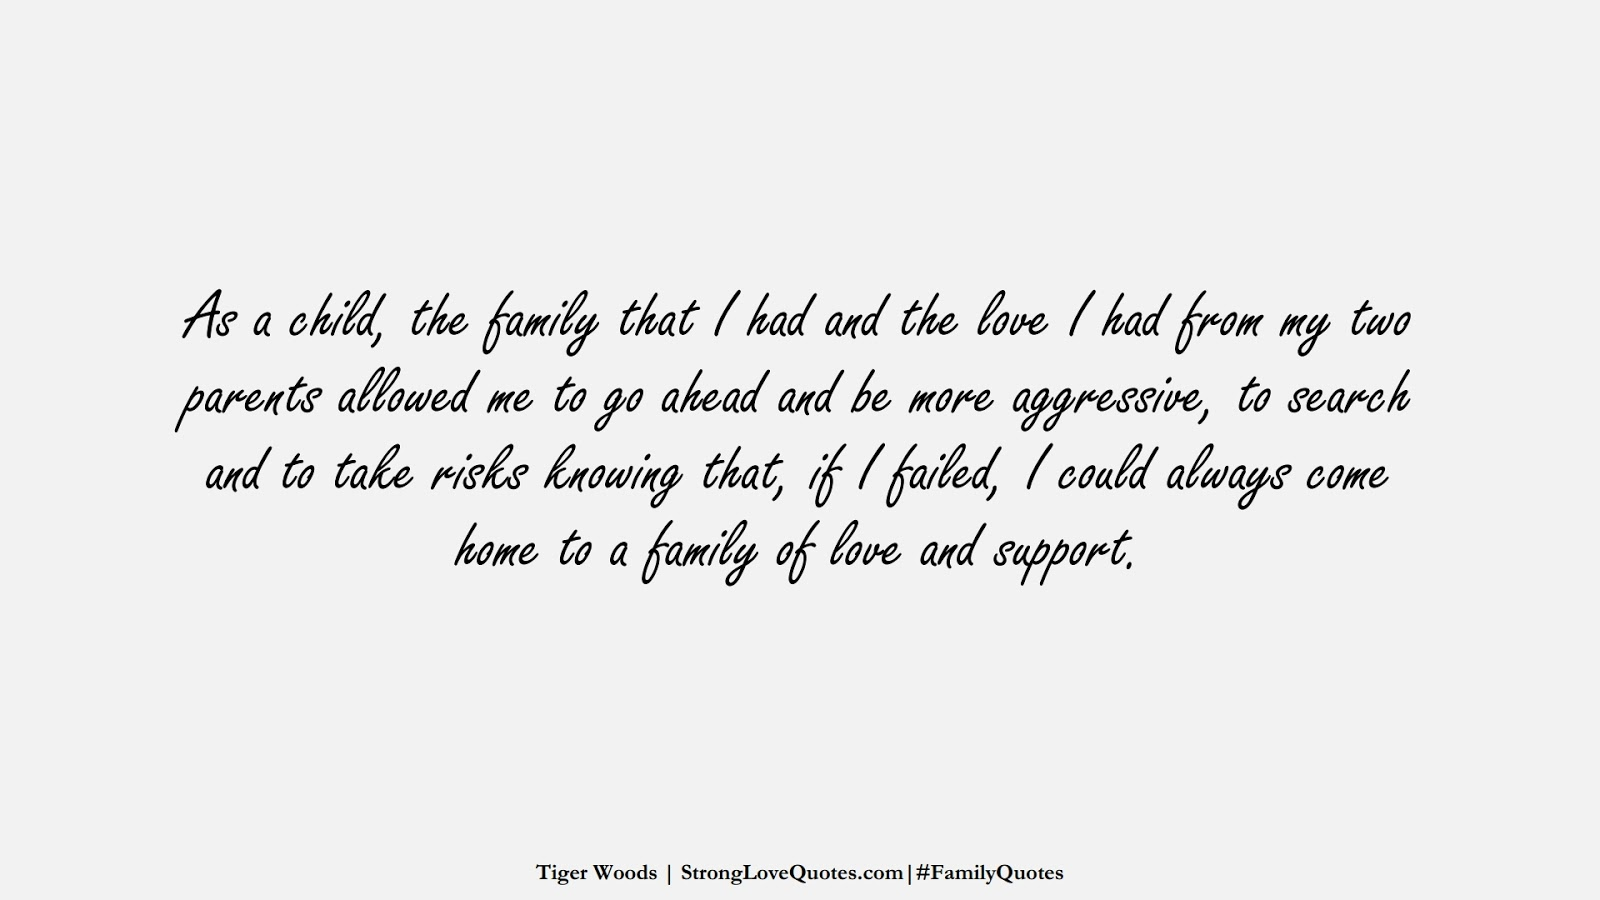 As a child, the family that I had and the love I had from my two parents allowed me to go ahead and be more aggressive, to search and to take risks knowing that, if I failed, I could always come home to a family of love and support. (Tiger Woods);  #FamilyQuotes